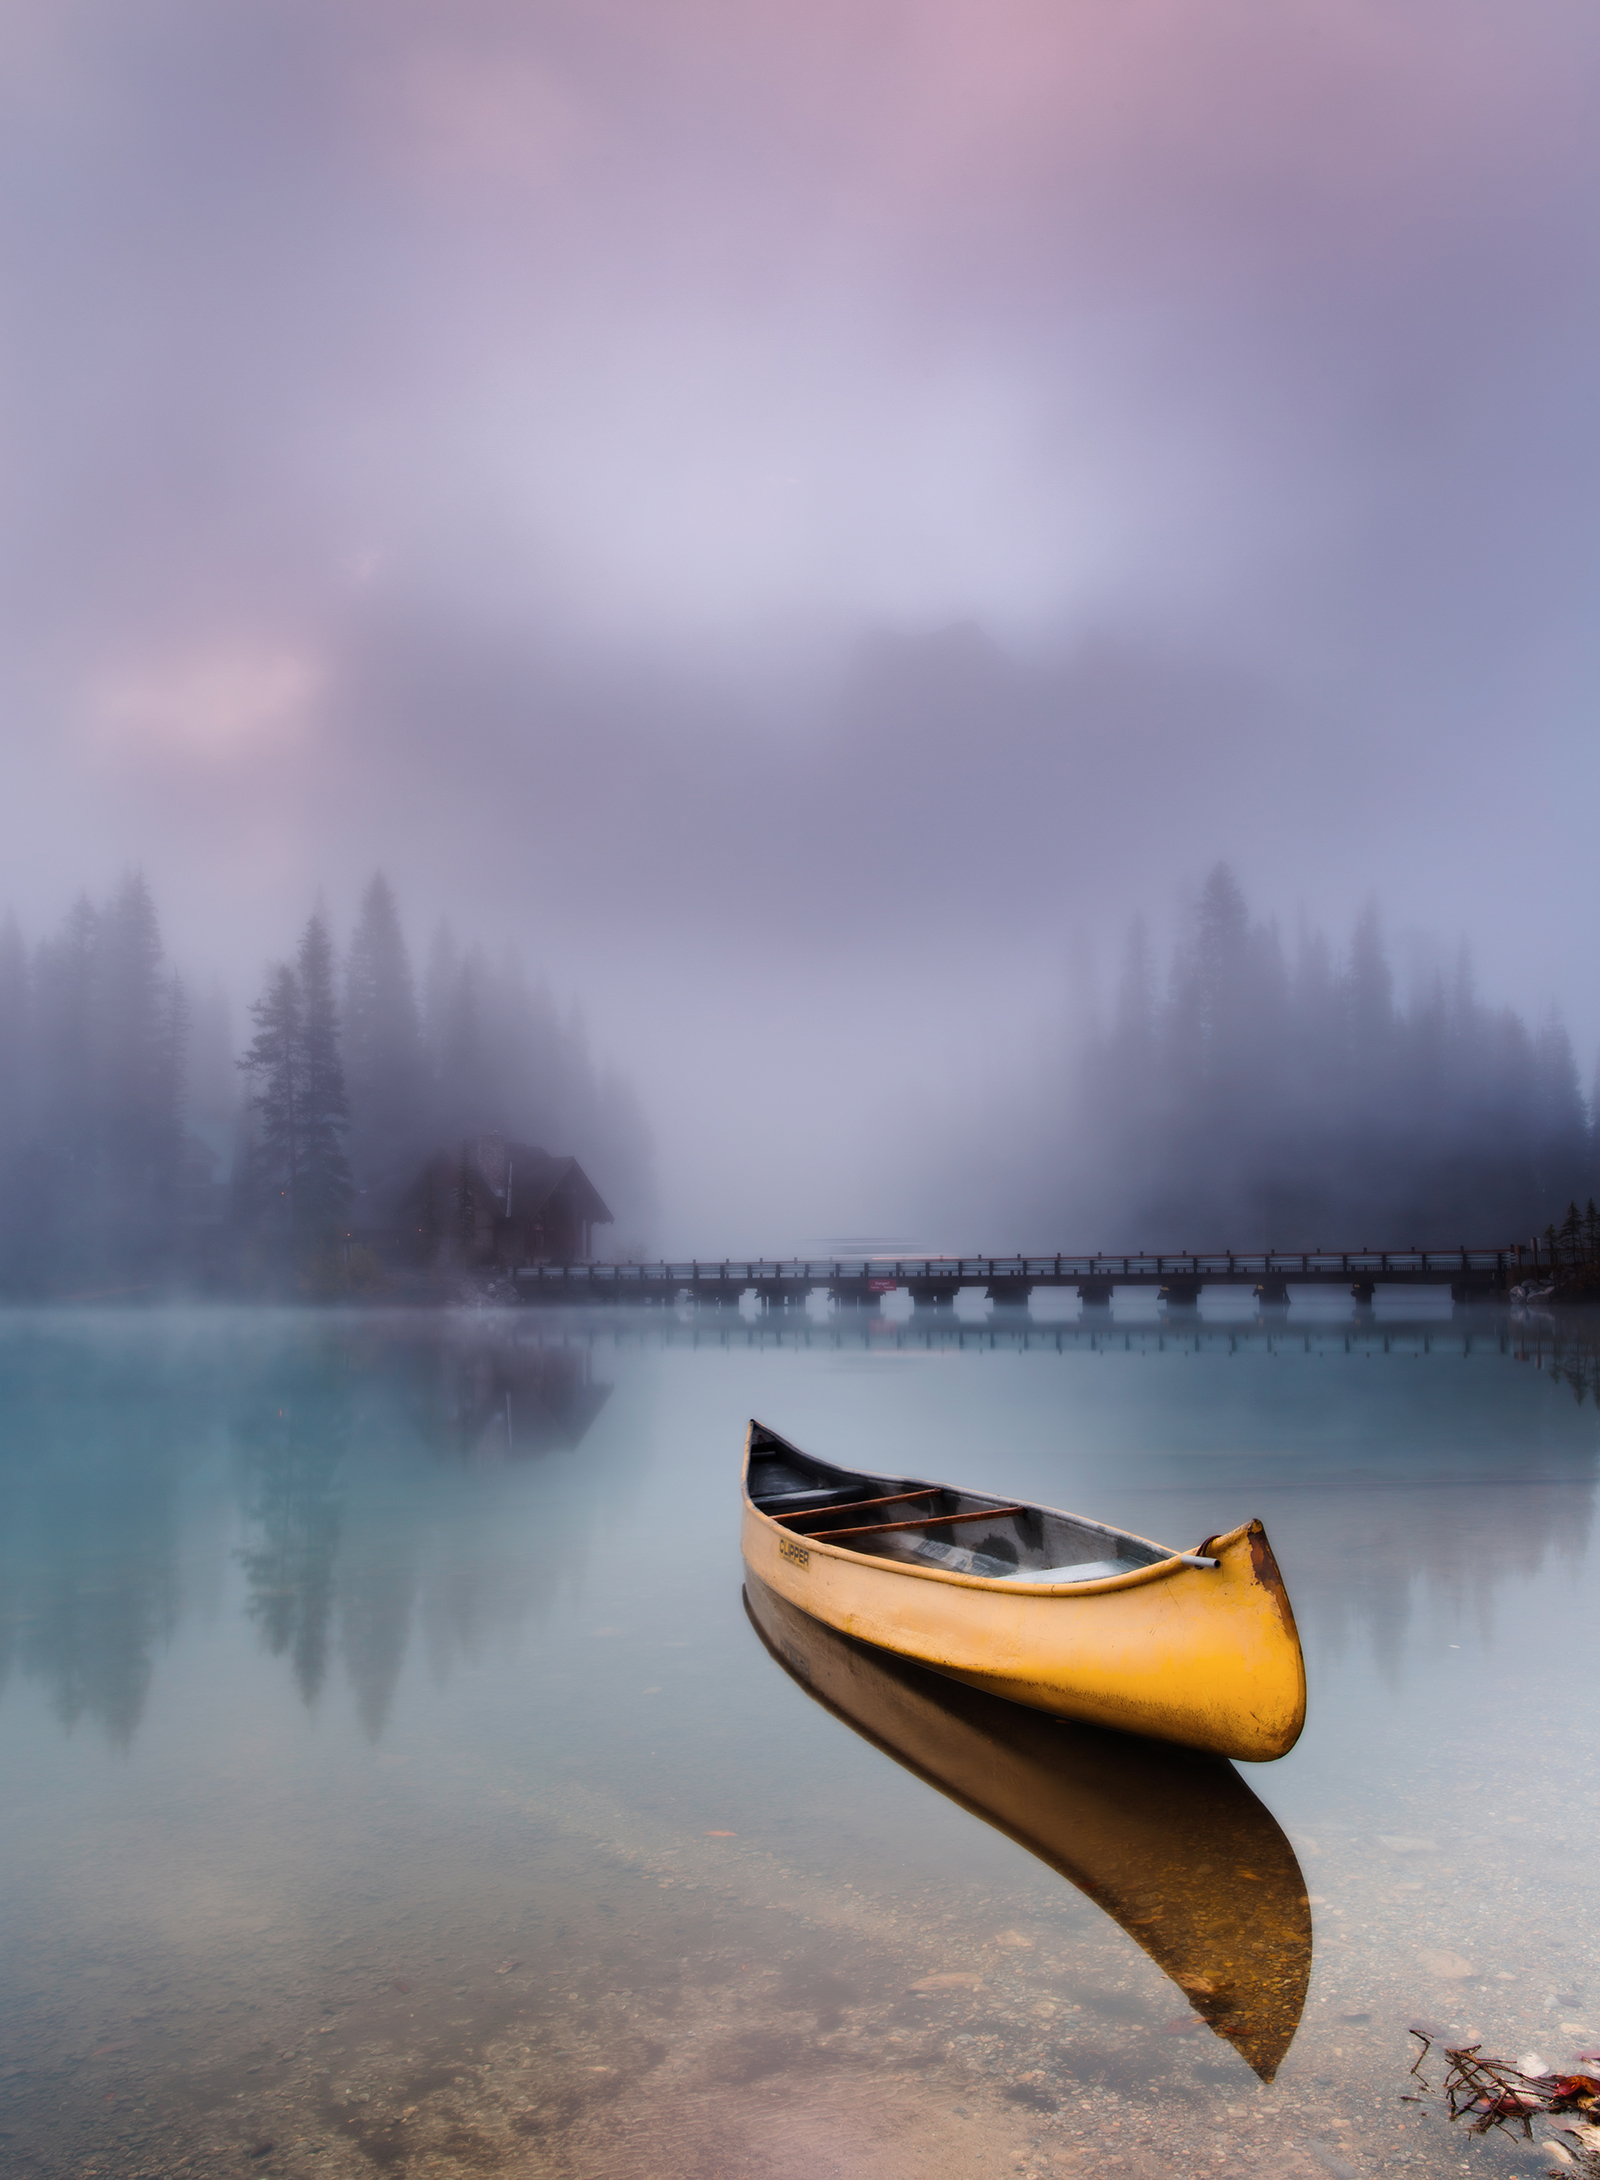 A canoe floats on the perfectly calm surface of Emerald Lake in B.C.'s Yoho National Park. Photo by Evgeny Chertov